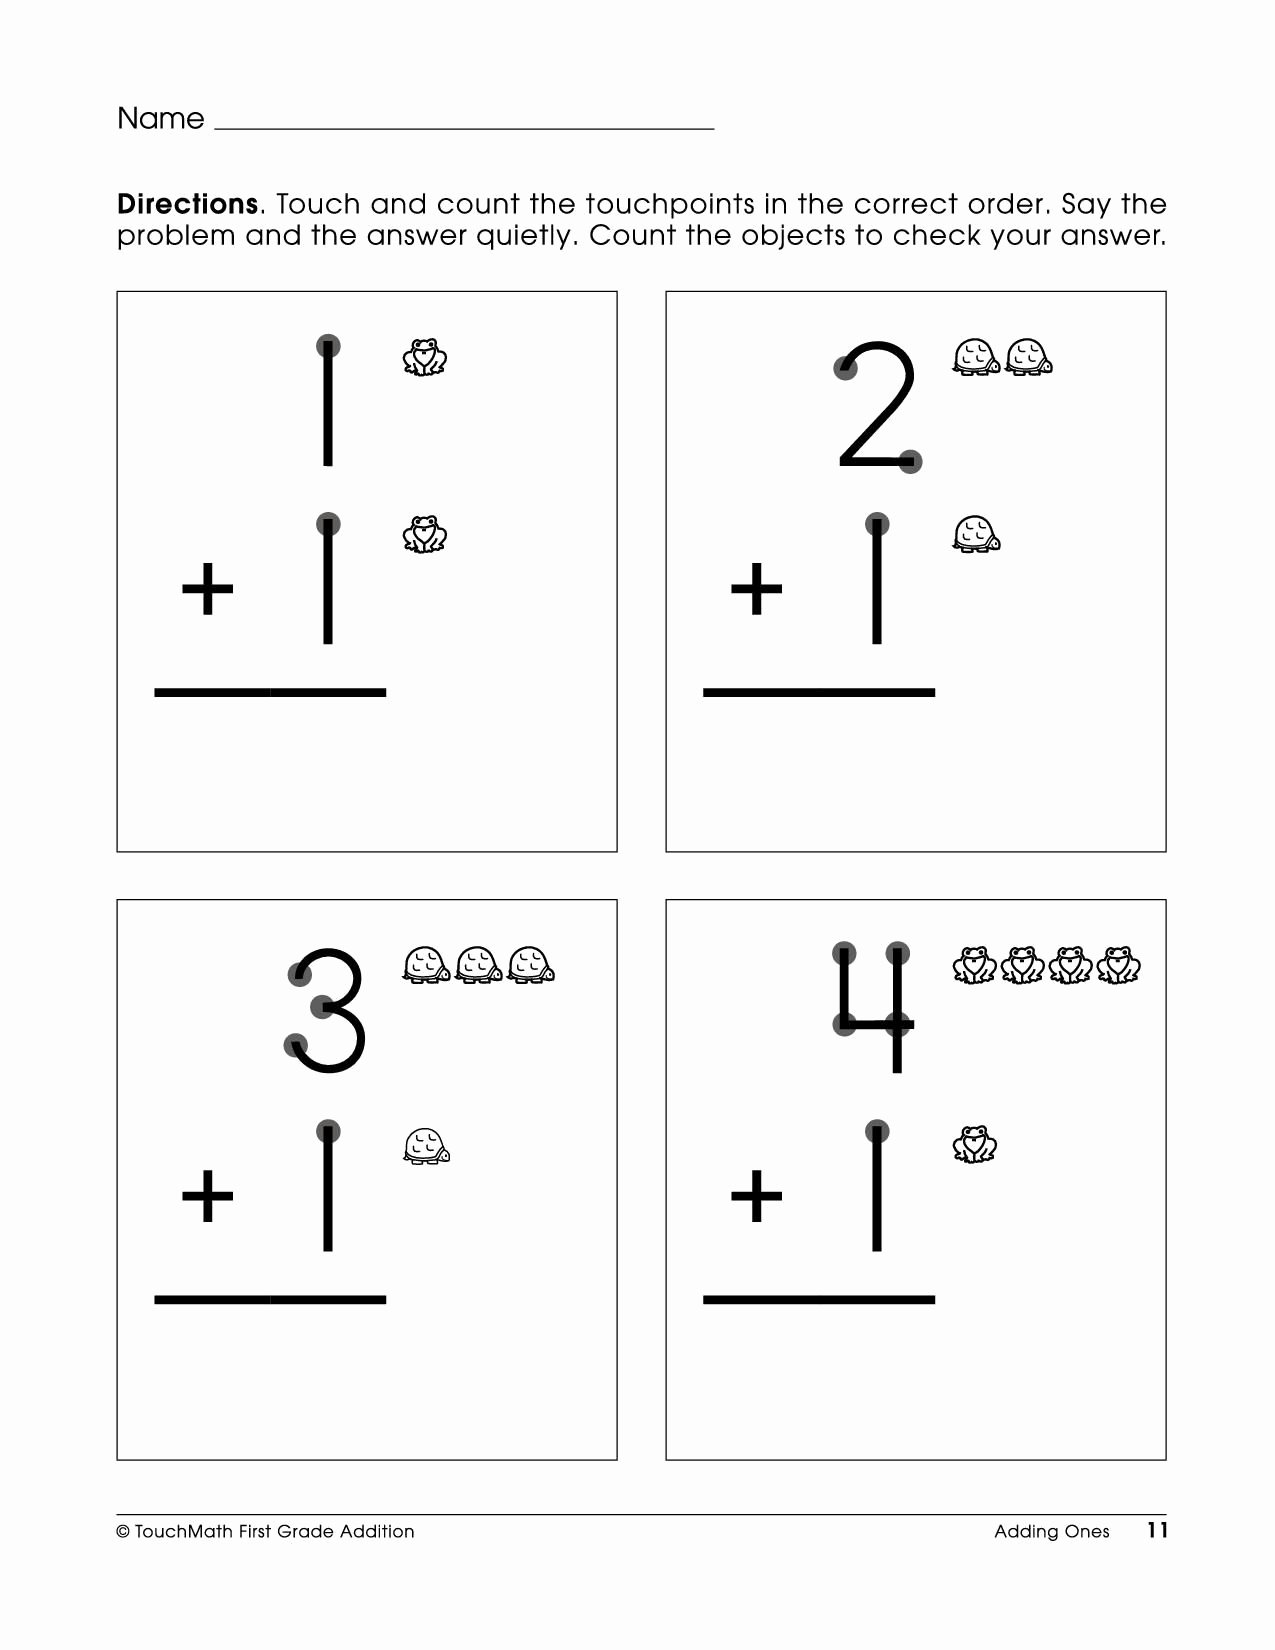 Touch Math Multiplication Worksheets top 10 Free Printable touchpoint Math Worksheets